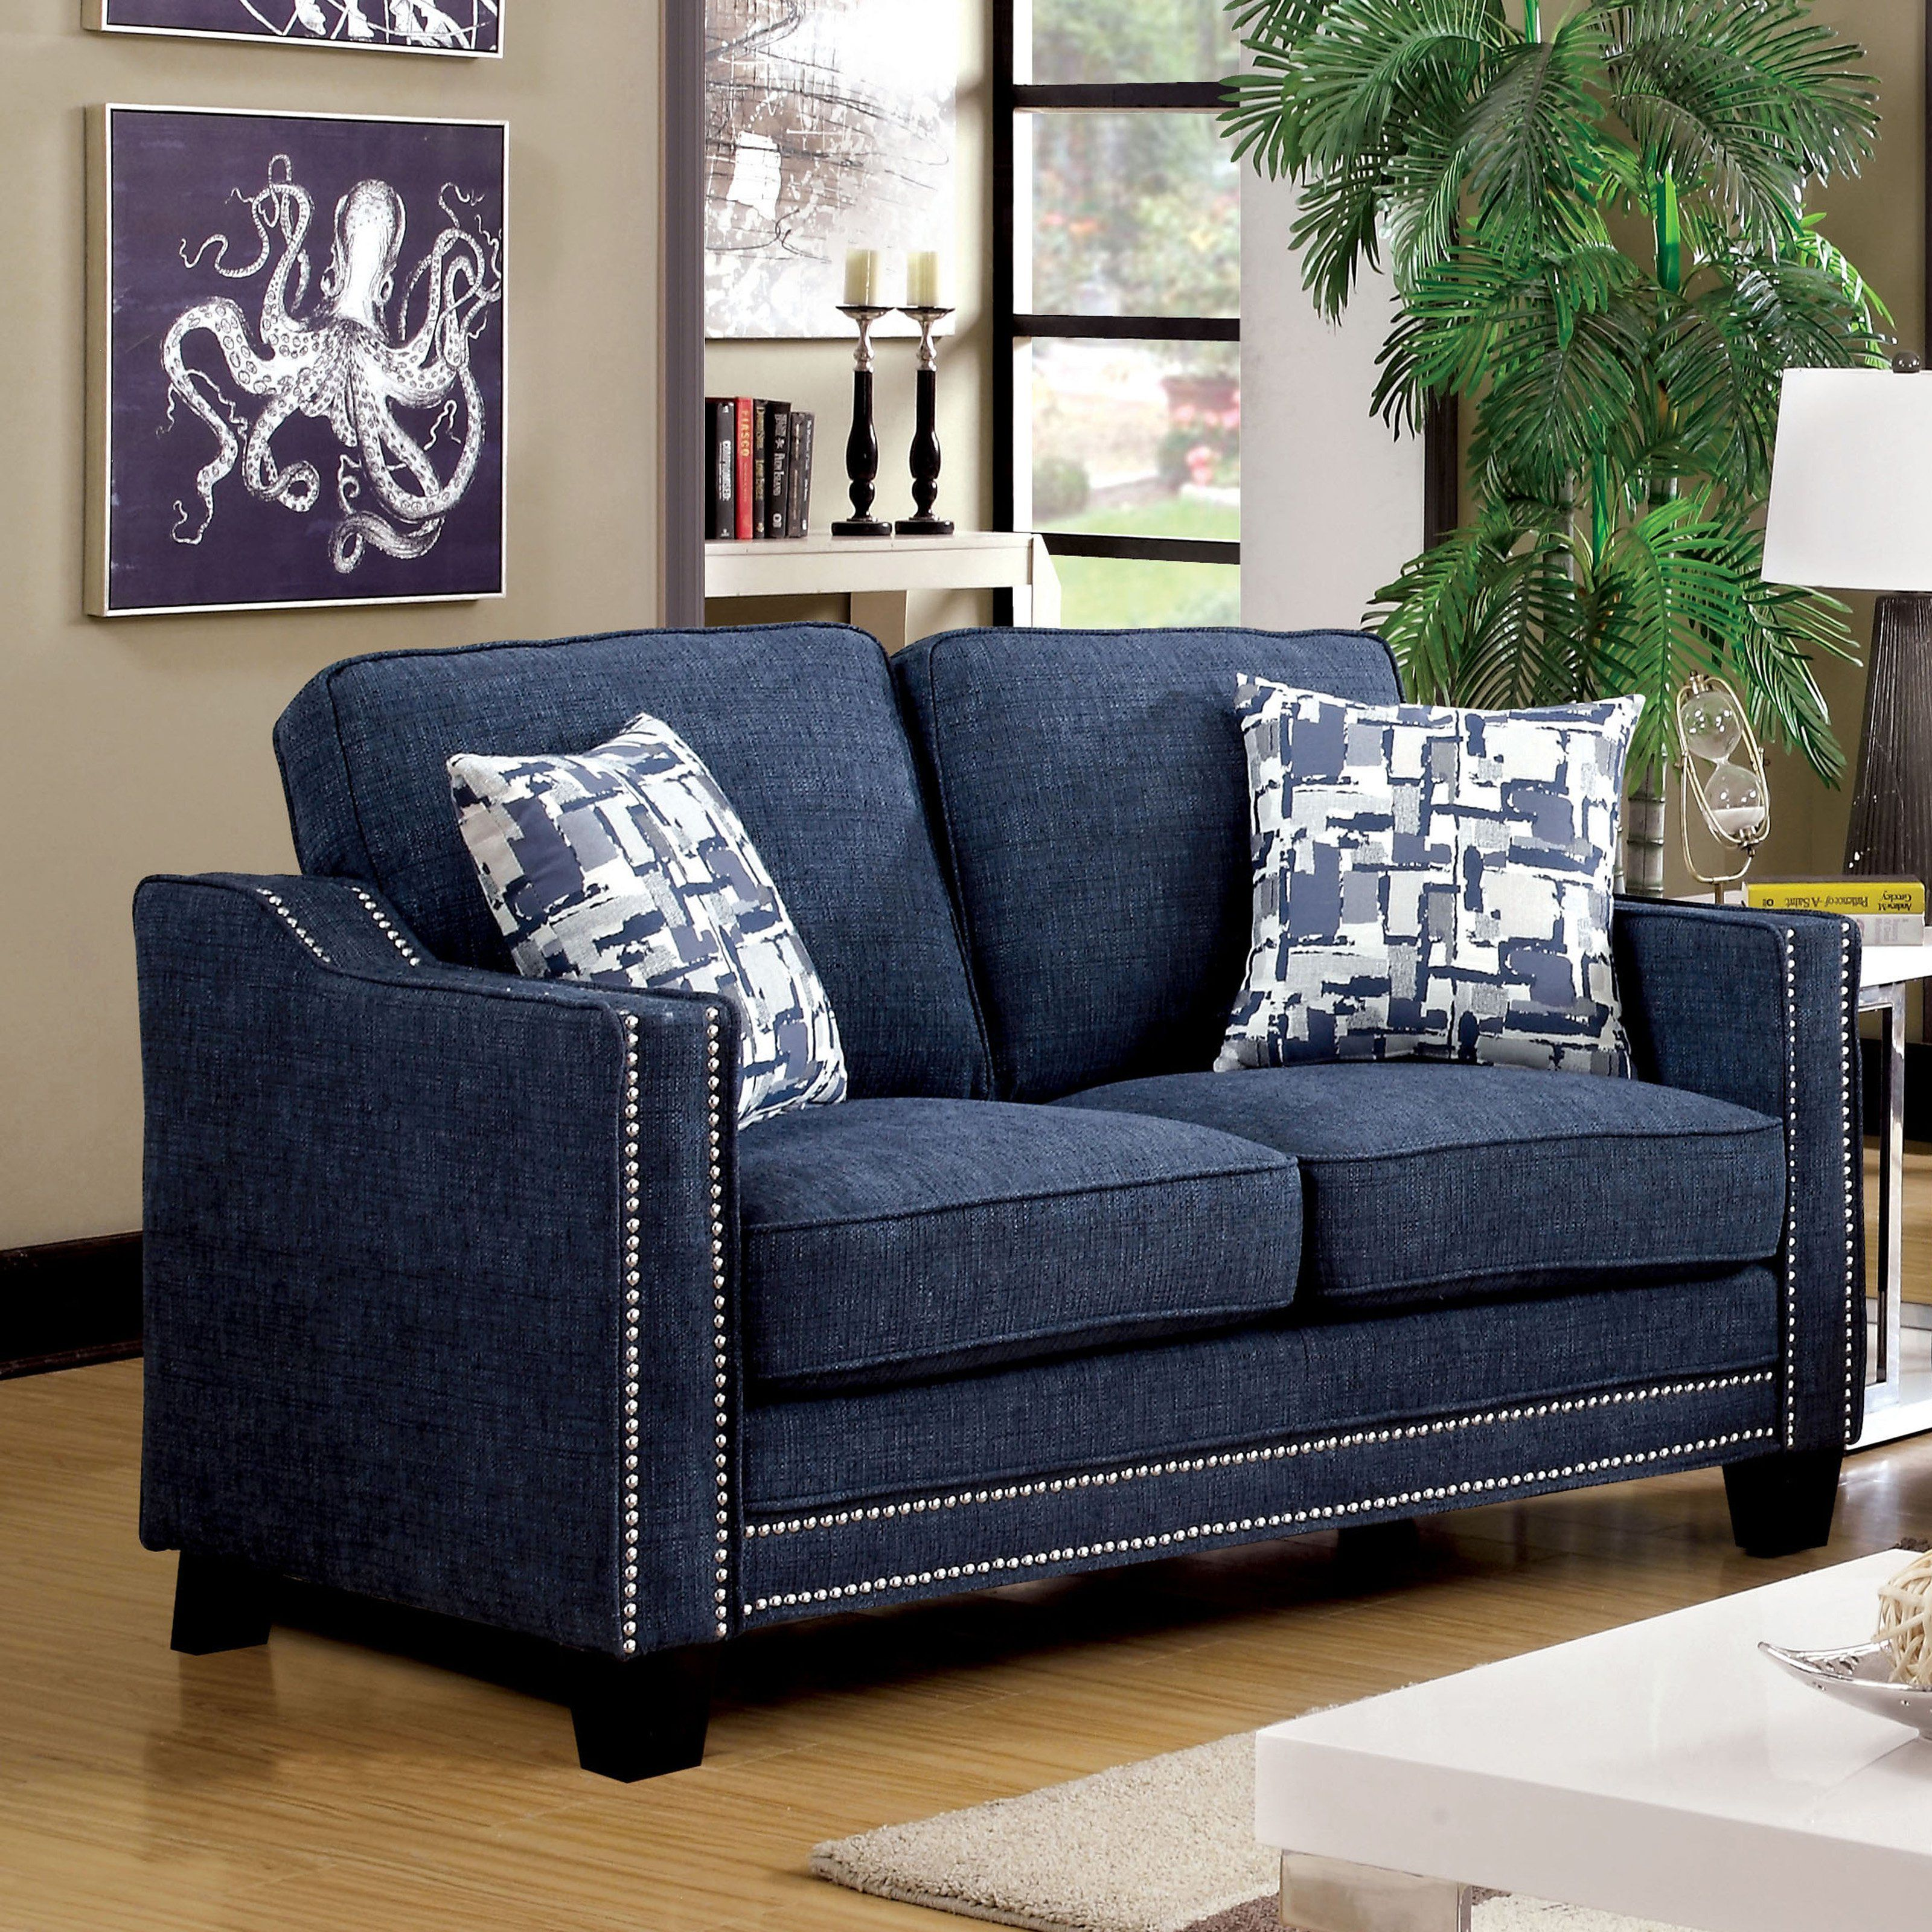 Furniture Of America Polin Studded Chenille Chair: Furniture Of America Polin Studded Chenille Loveseat With